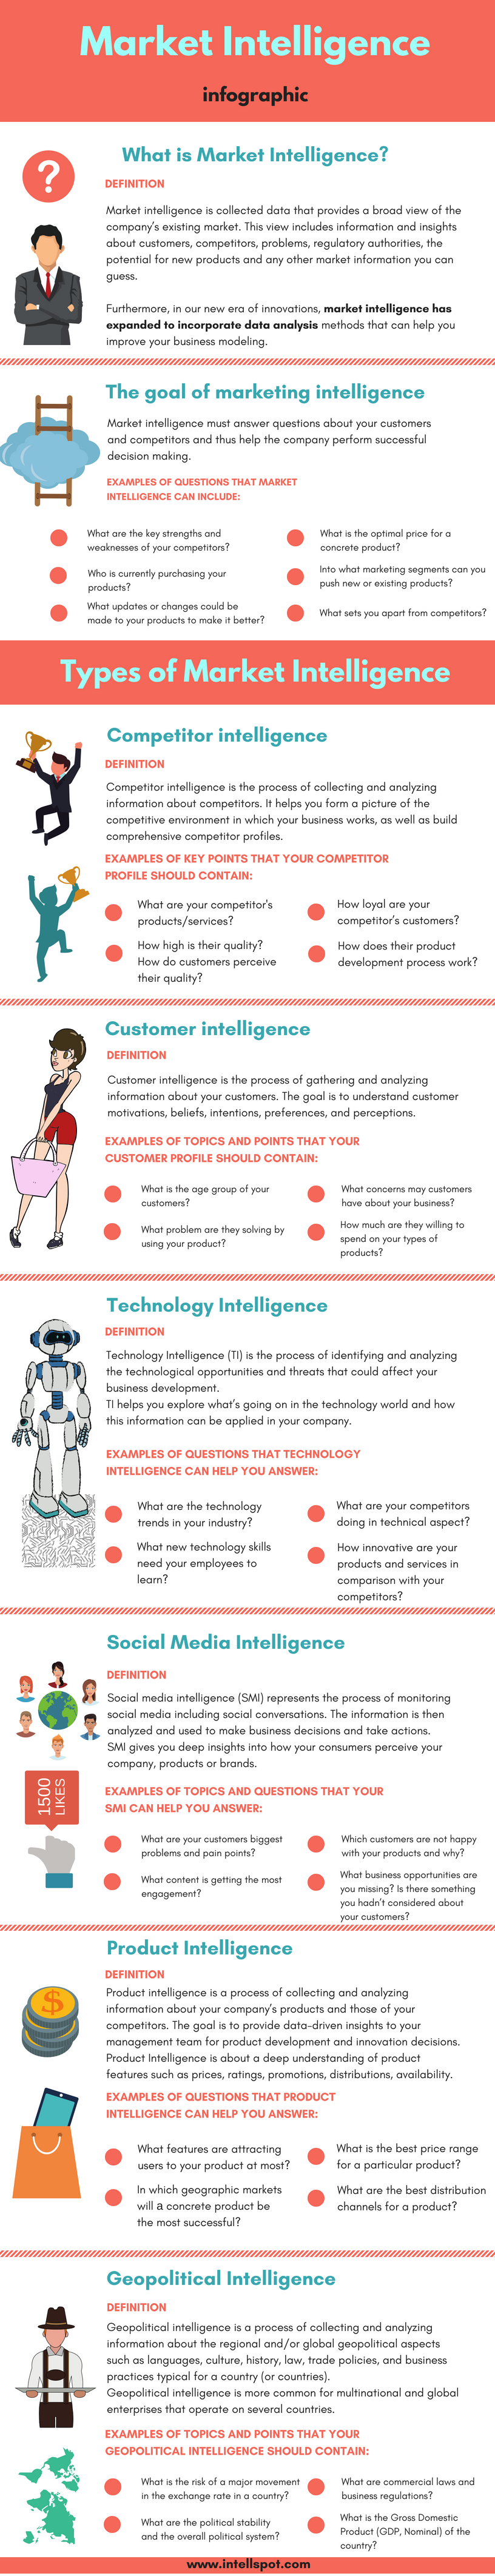 Market Intelligence - an Infographic